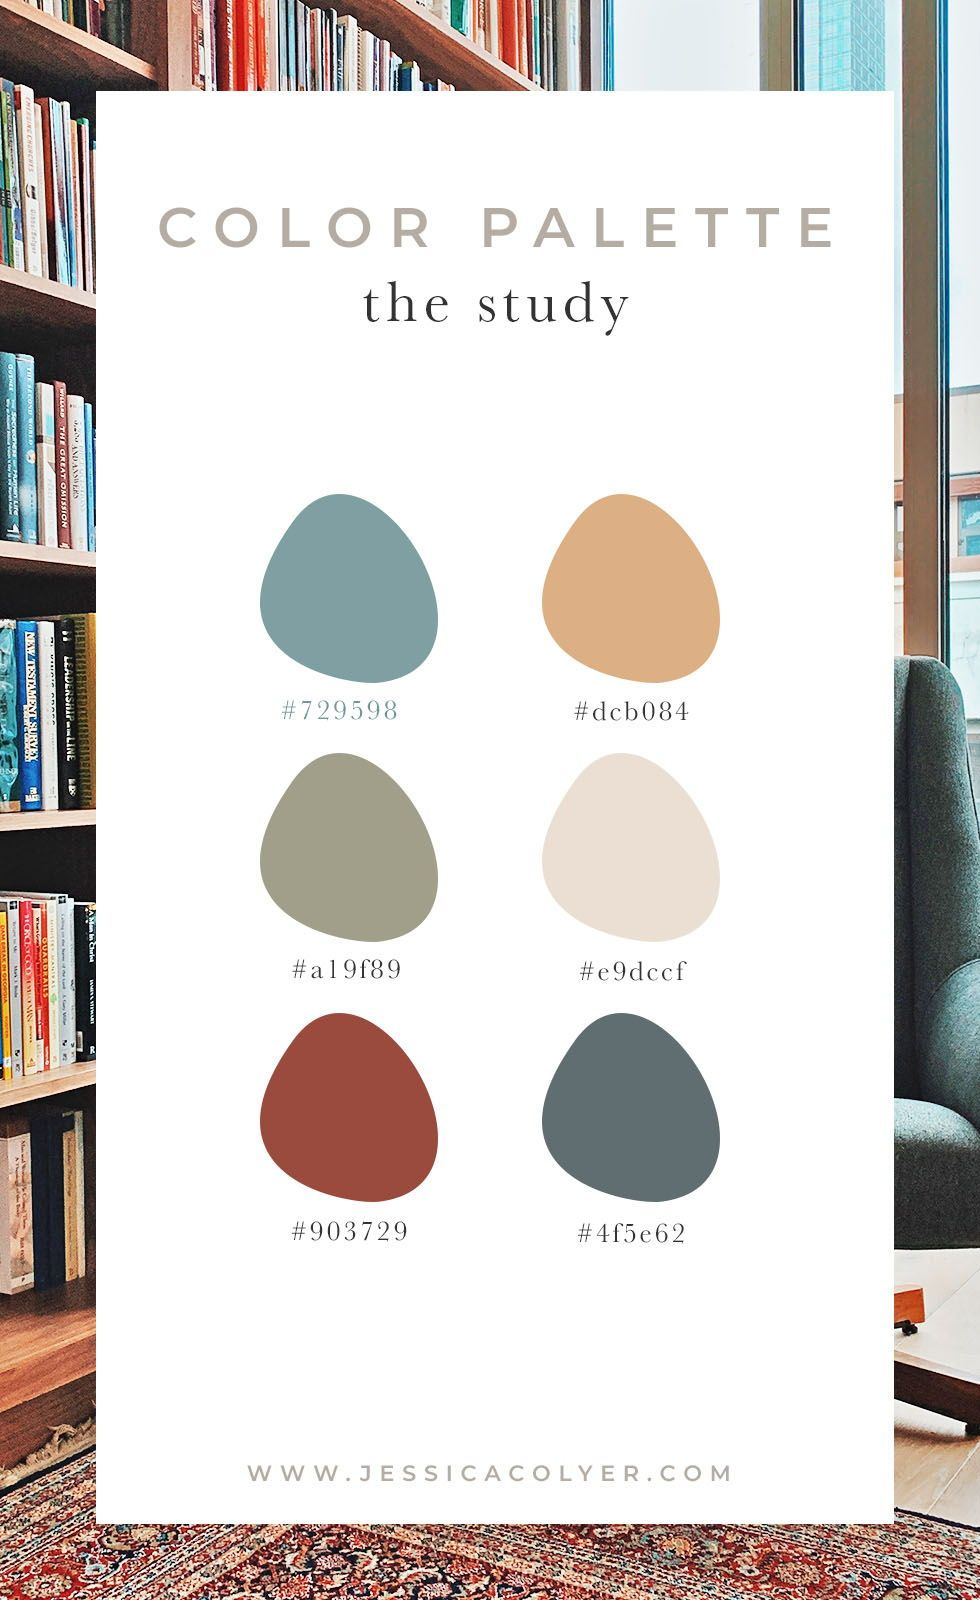 The Study Color Palette For A Brand That Really Sings With Reliability Modern Hues And A Sense Of Rustic Color Palettes Color Palette Design Color Palette